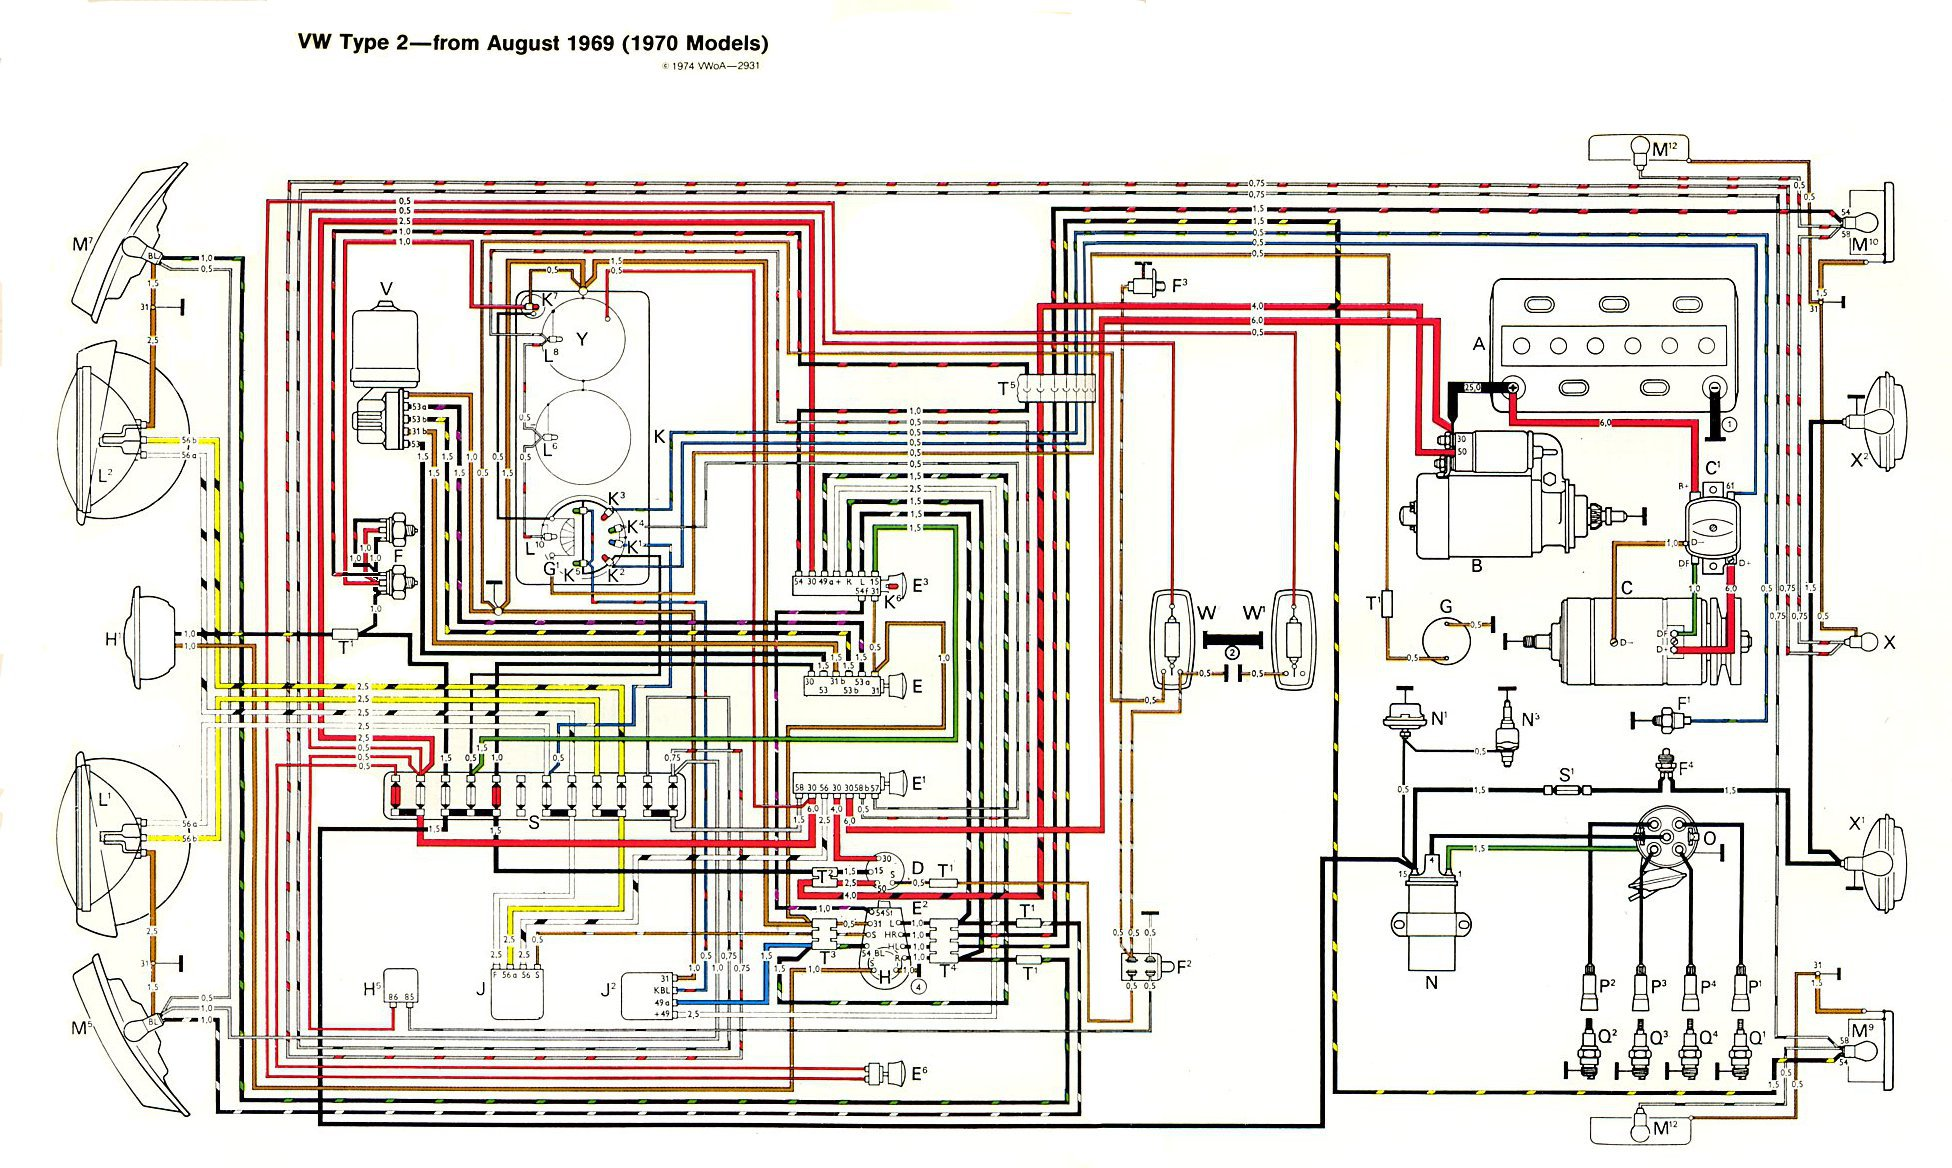 70 Vw Wiring Diagram Electrical Schematics 1973 Bug Thesamba Com Type 2 Diagrams 1966 Beetle